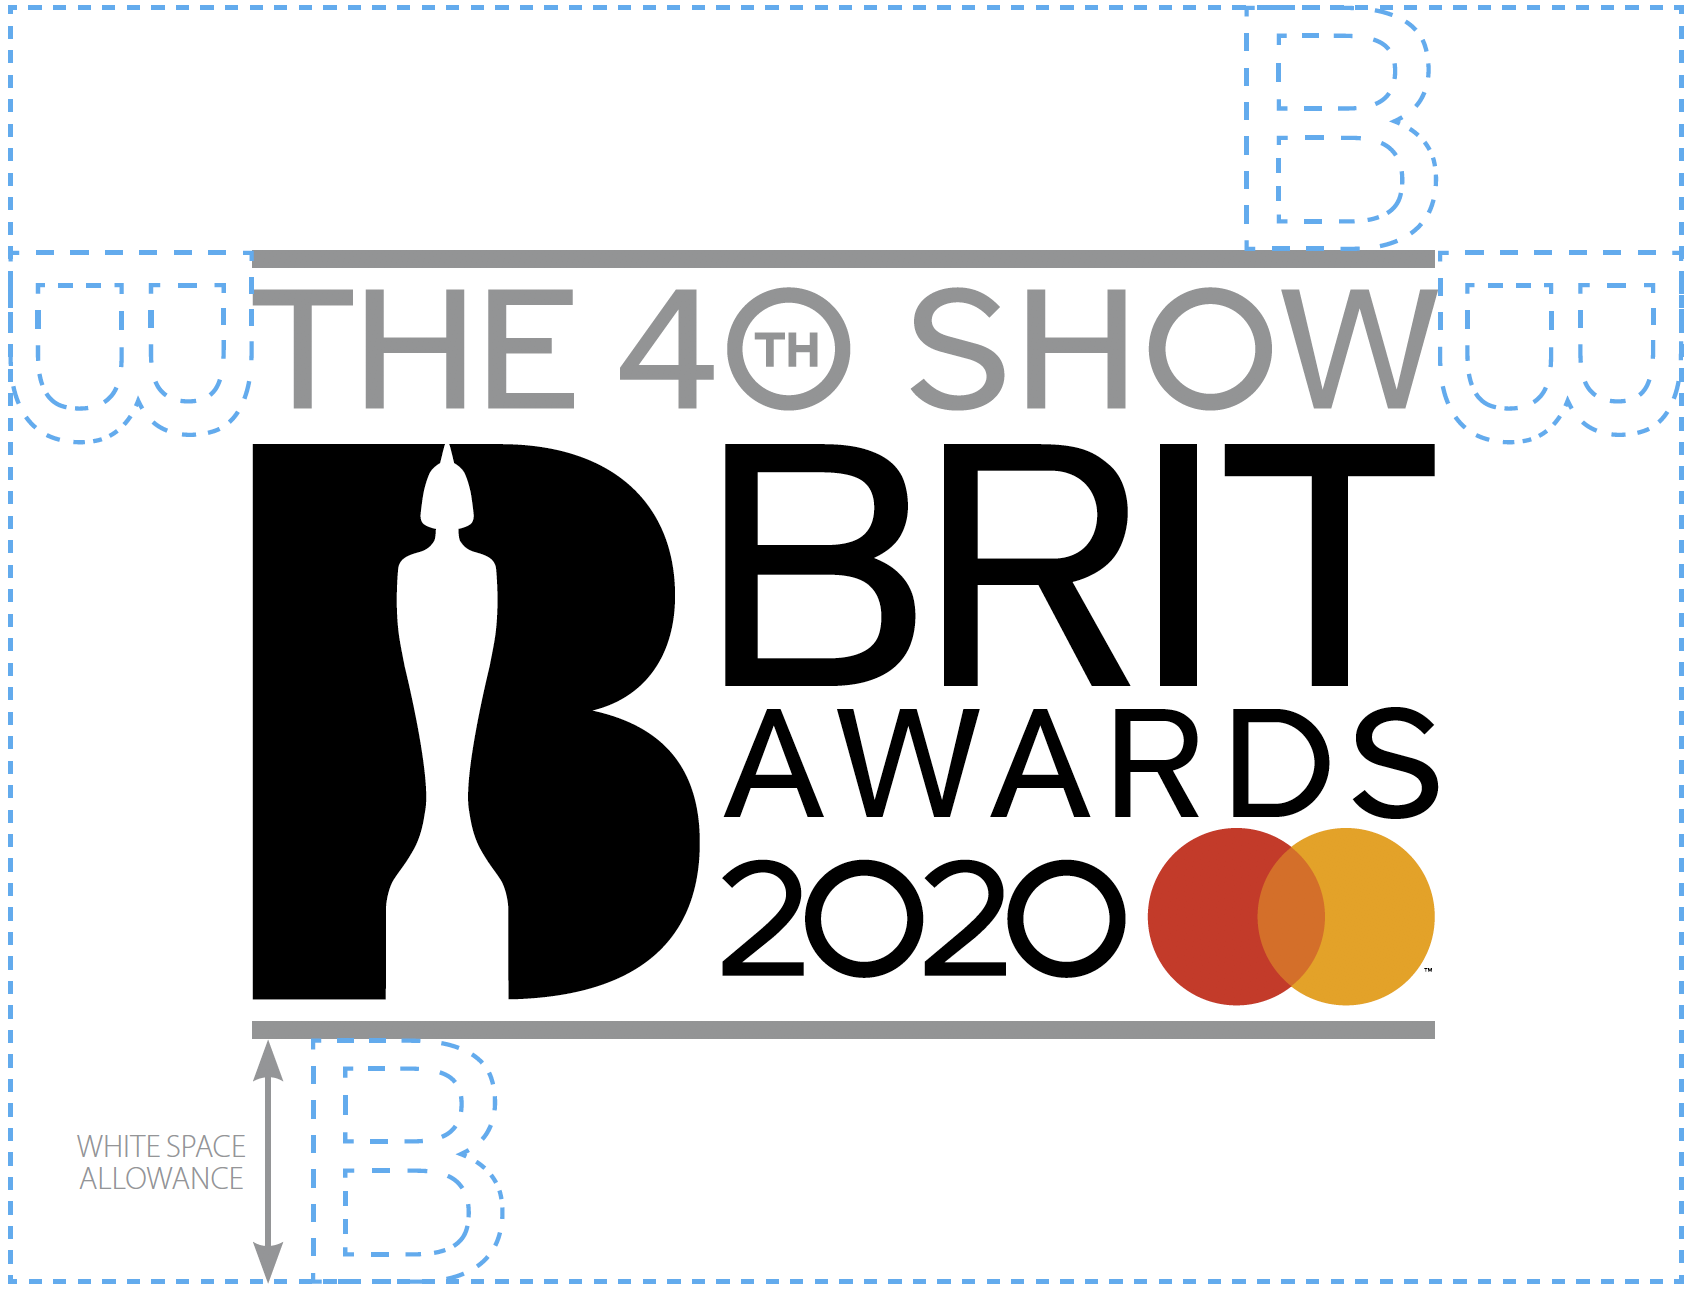 Bet Awards 2020 Full Show.Brits 2020 Brand Resources With Trophy Jmenternational Com